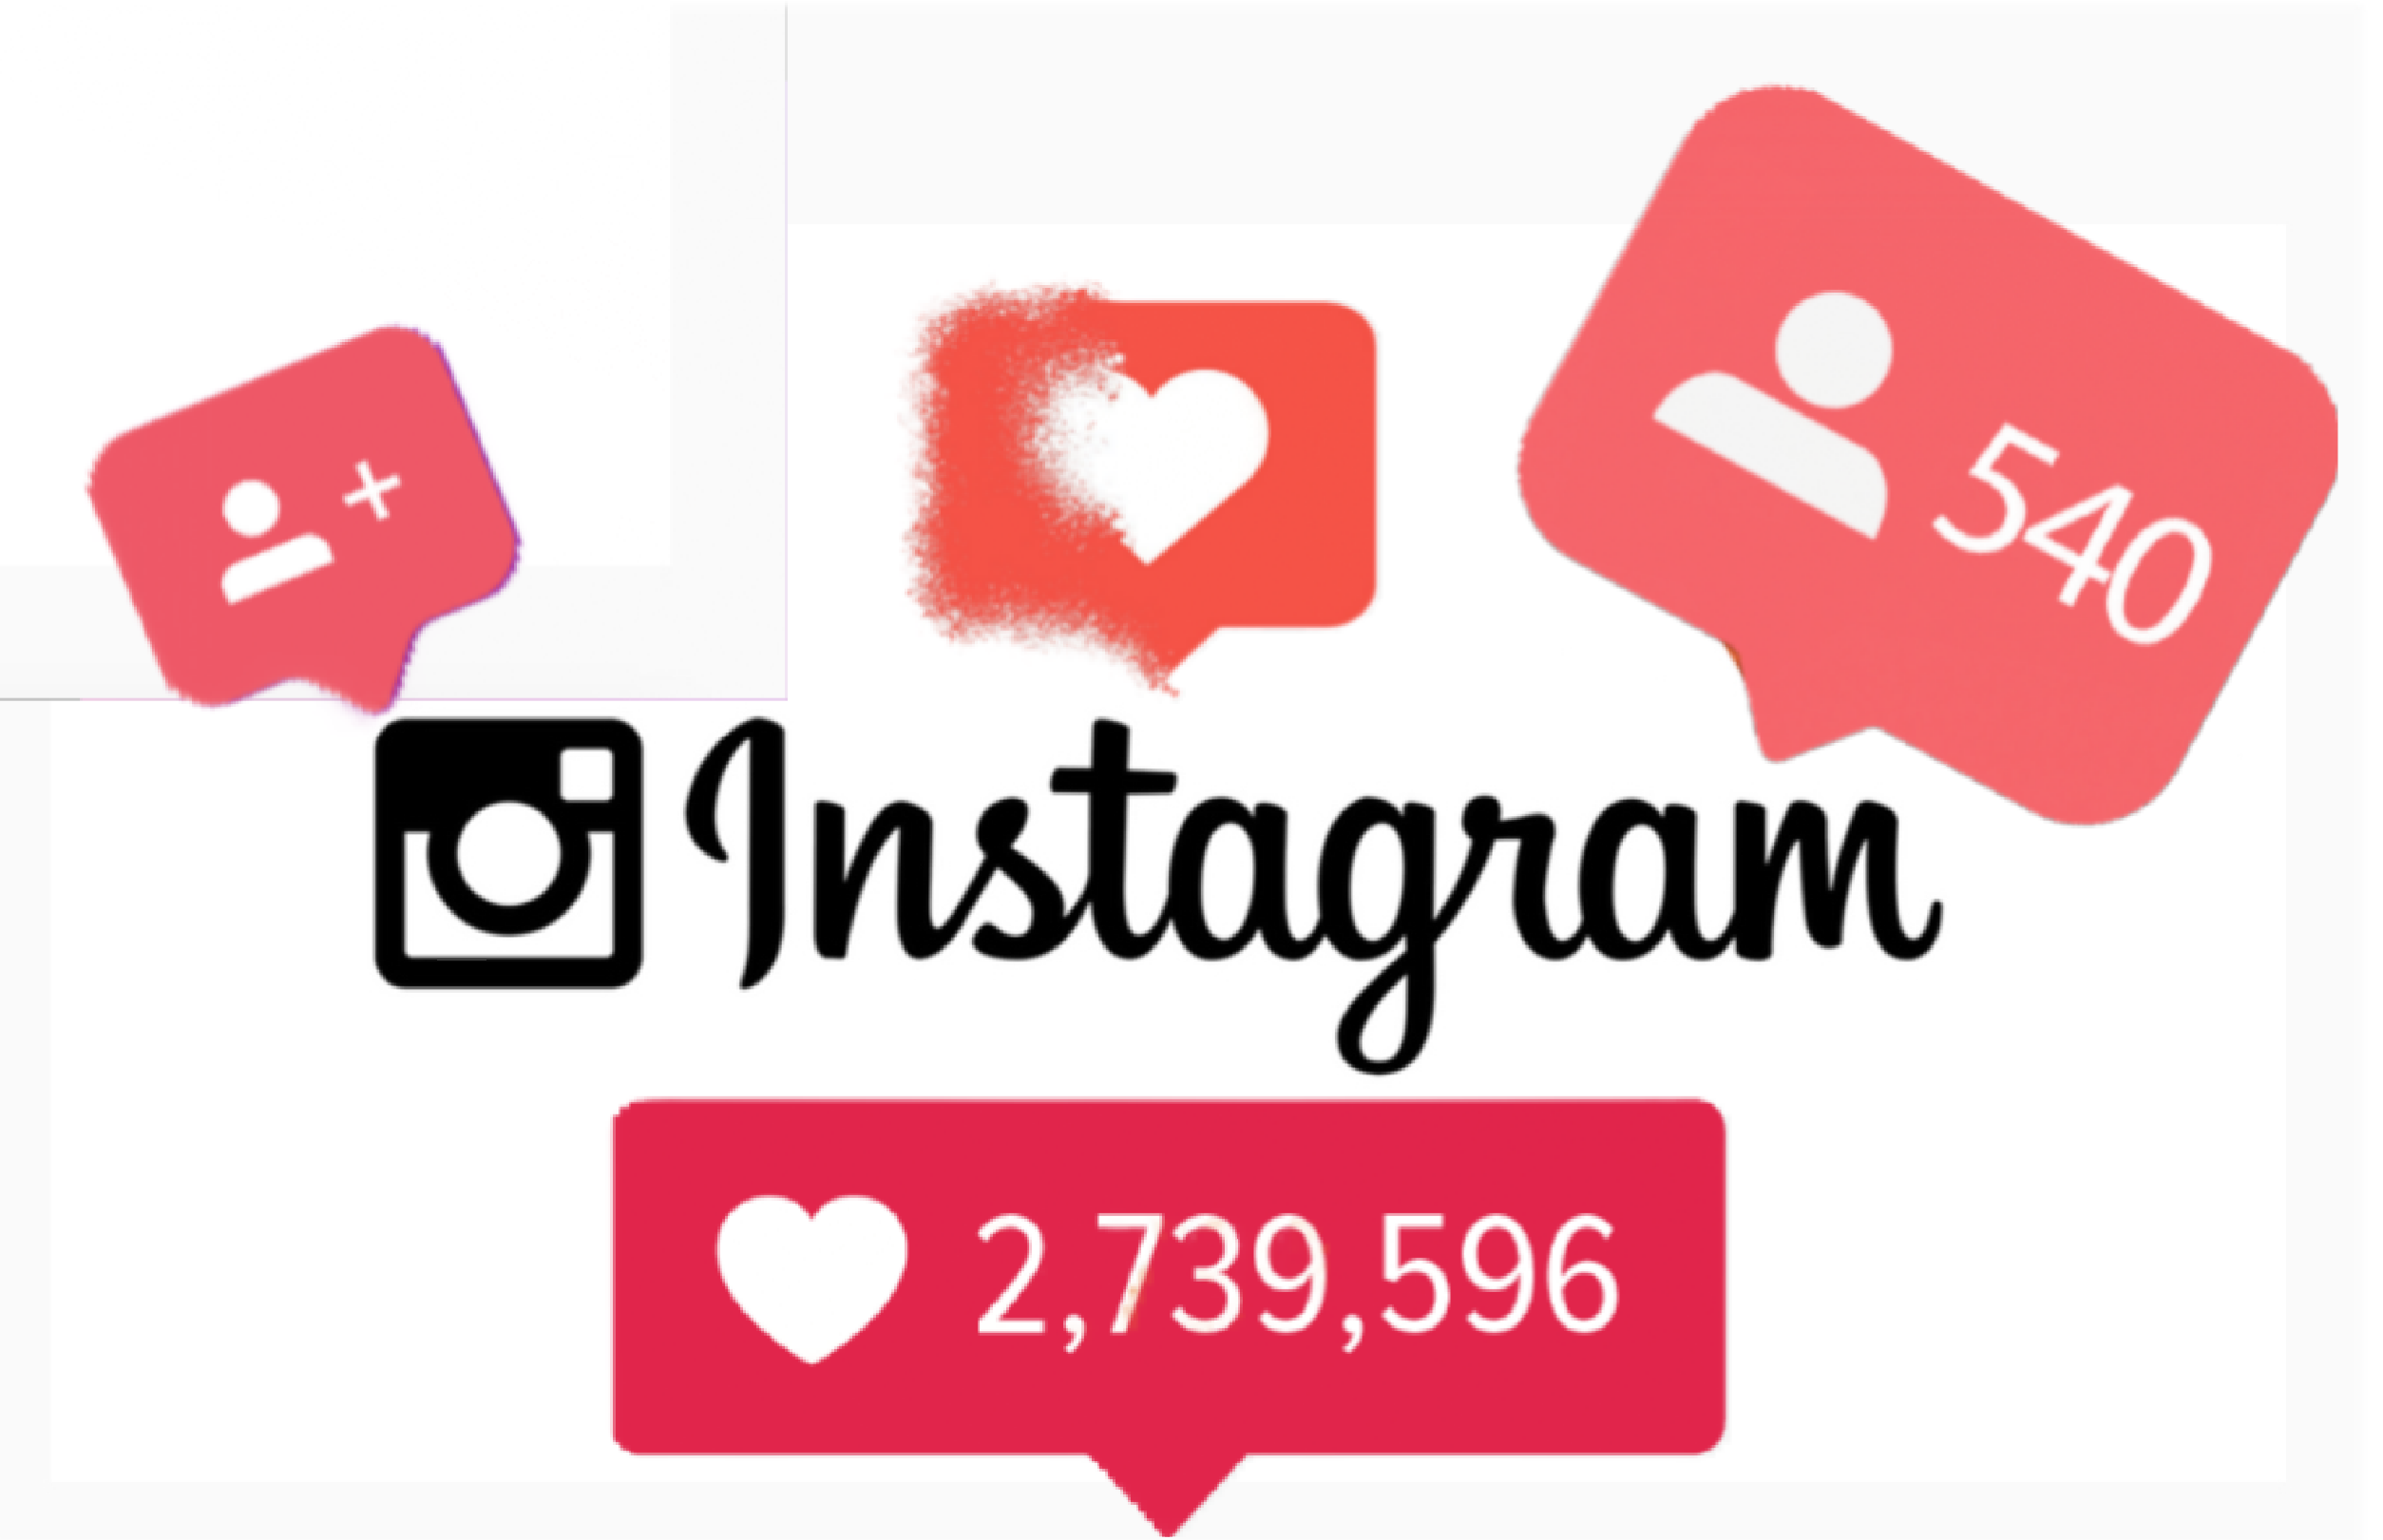 Instagram Followers, 6 Tricks To Get Free Instagram Followers In 2020 – Real And Fast